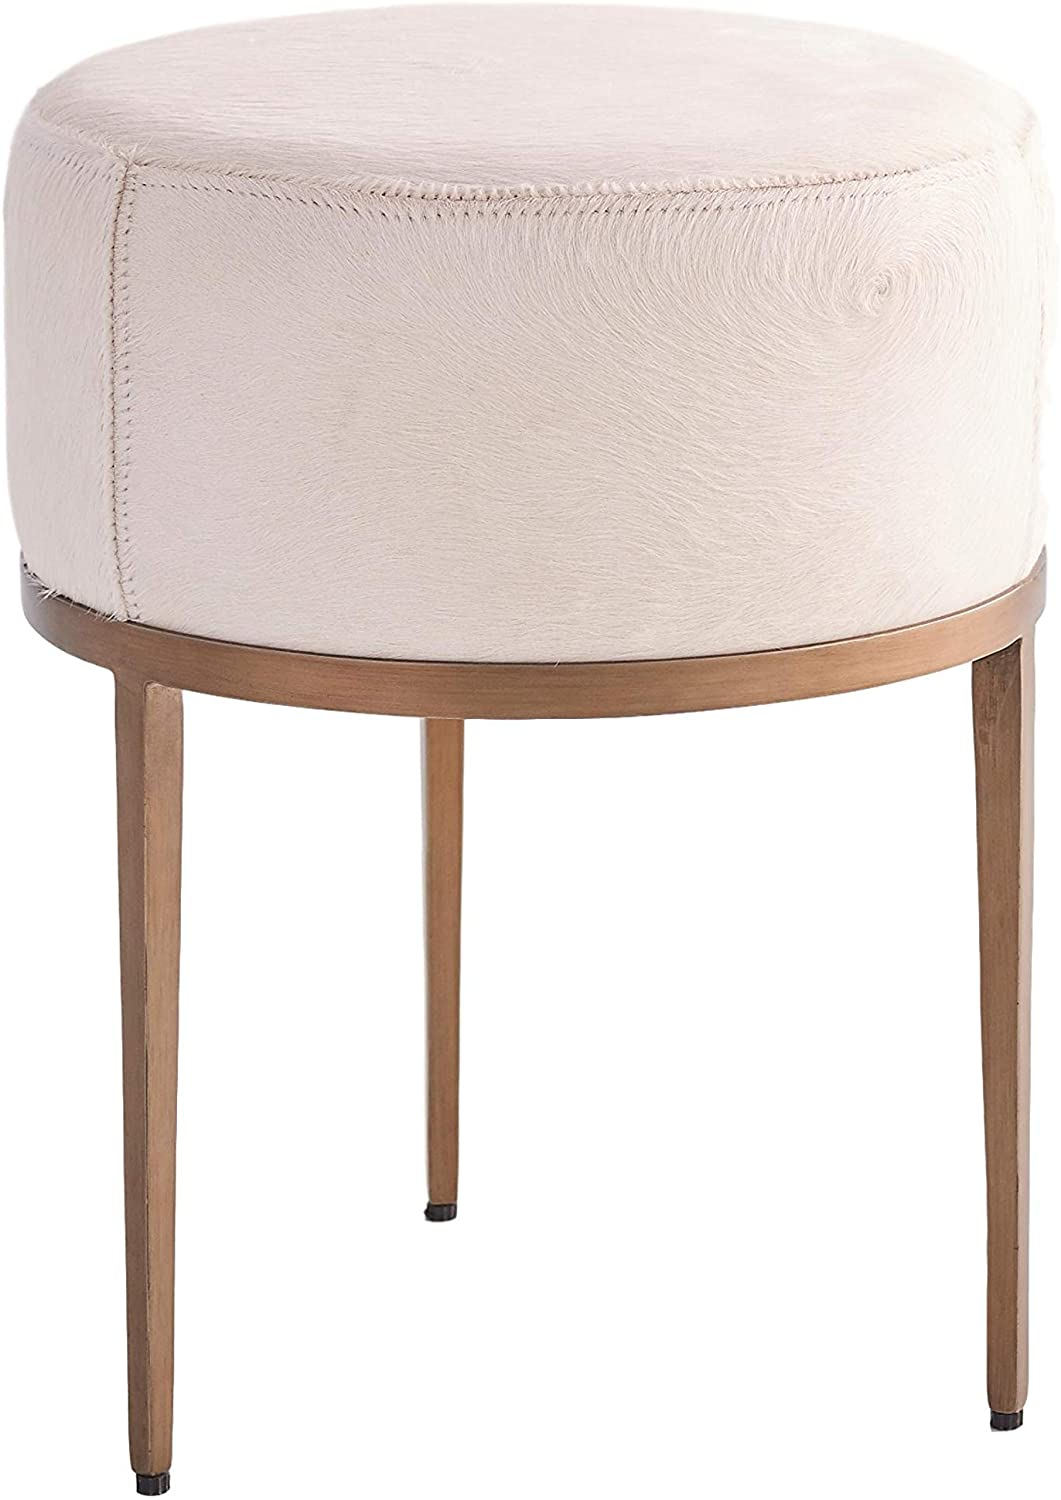 Global Views Luxe Modern Minimalist Ivory Hair Hide Stool | Leather Round Iron Thick Cushion